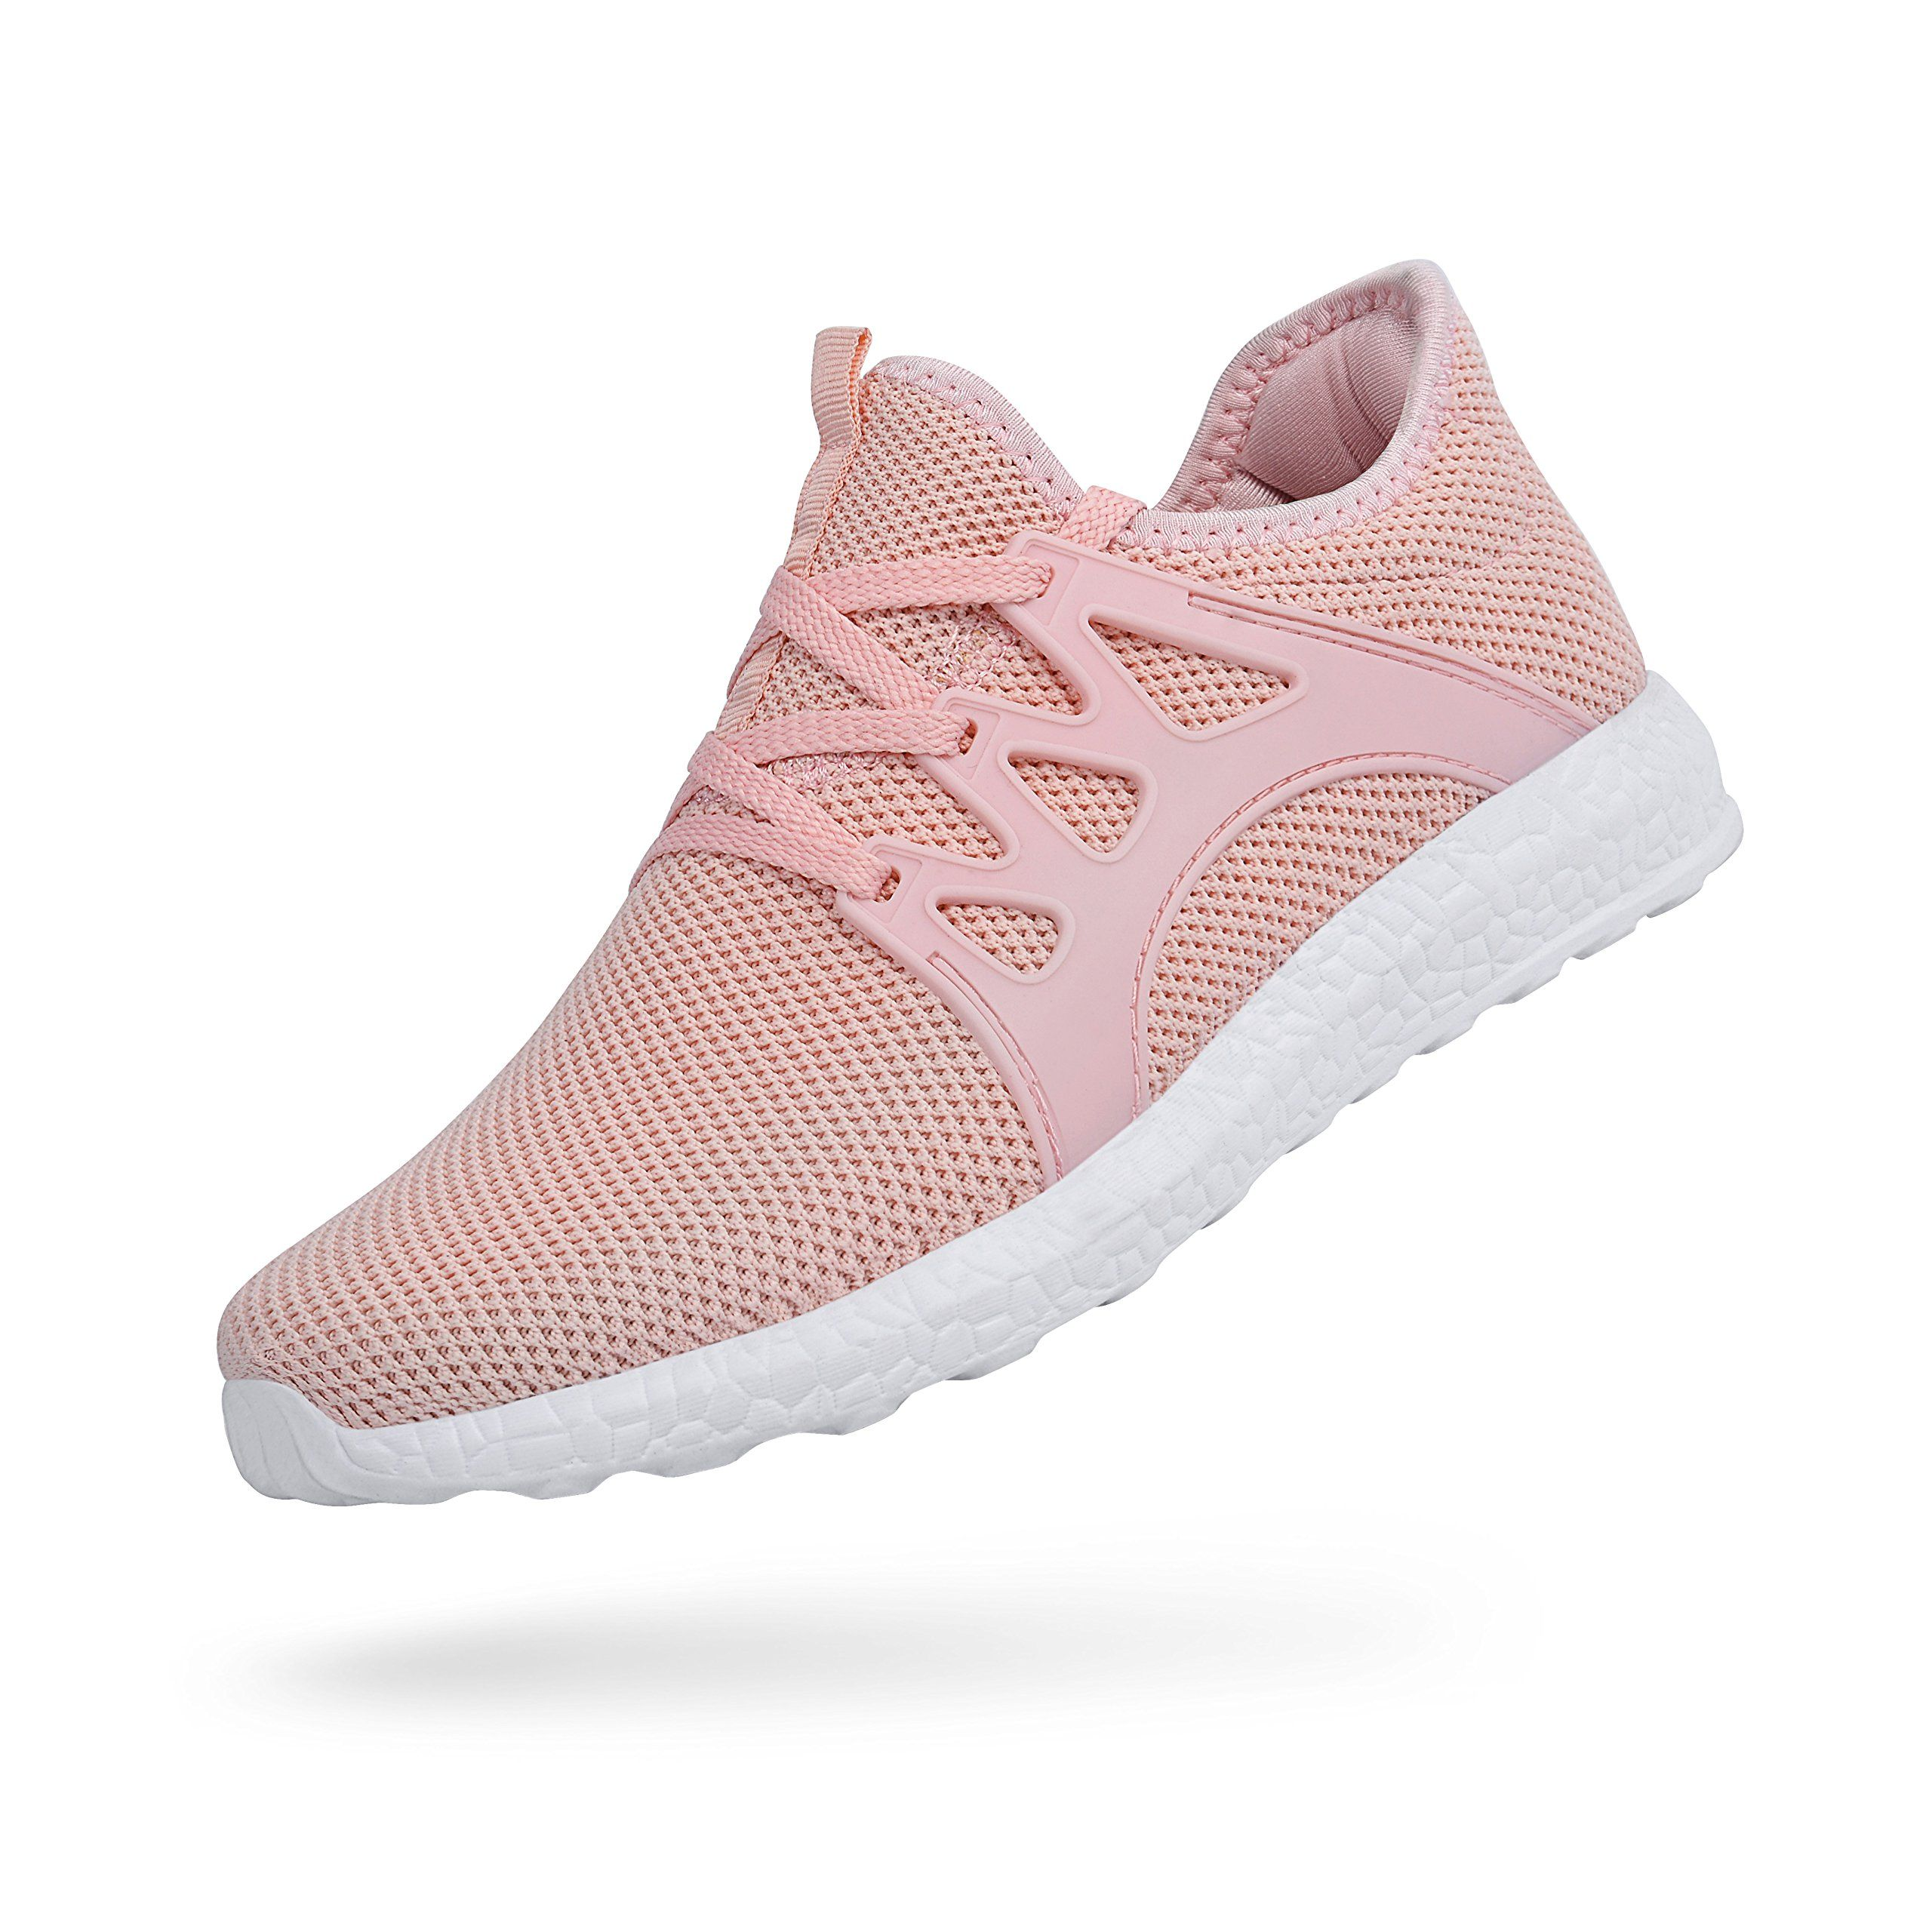 551286df8 Feetmat Womens Sneakers Ultra Lightweight Breathable Mesh Athletic Running  Shoes Plus Size 6 Pink *** You can get more details by clicking on the  image.